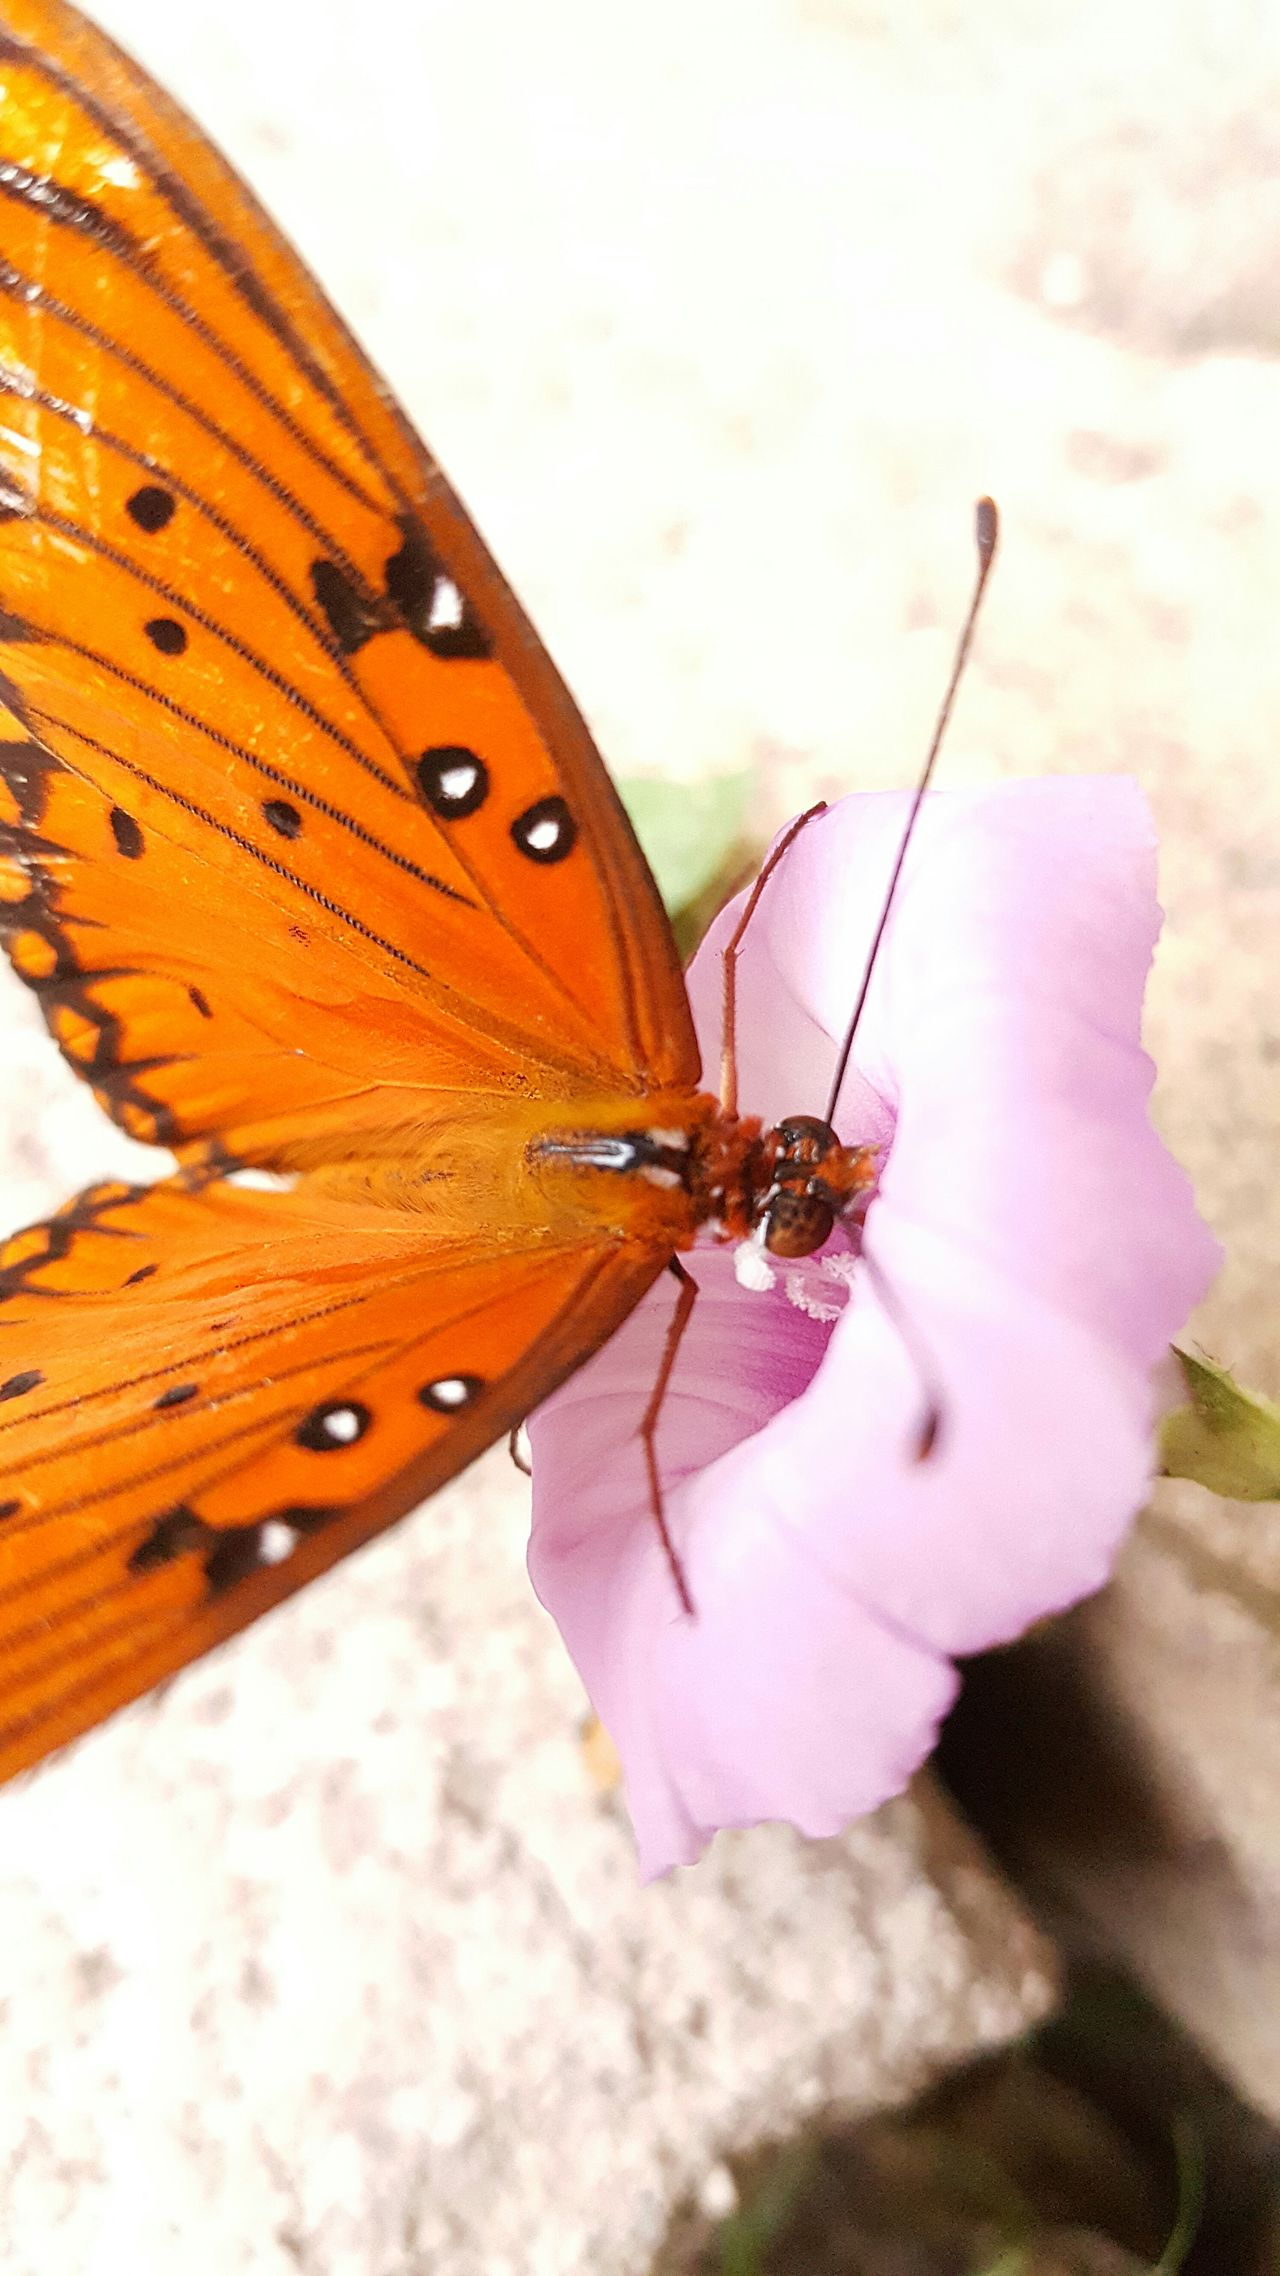 One Animal Insect Animal Themes Wildlife Animals In The Wild Butterfly Butterfly - Insect Close-up Perching Animal Antenna Animal Wing Moth Focus On Foreground Nature Extreme Close-up Brown Animal Markings Beauty In Nature Day Outdoors